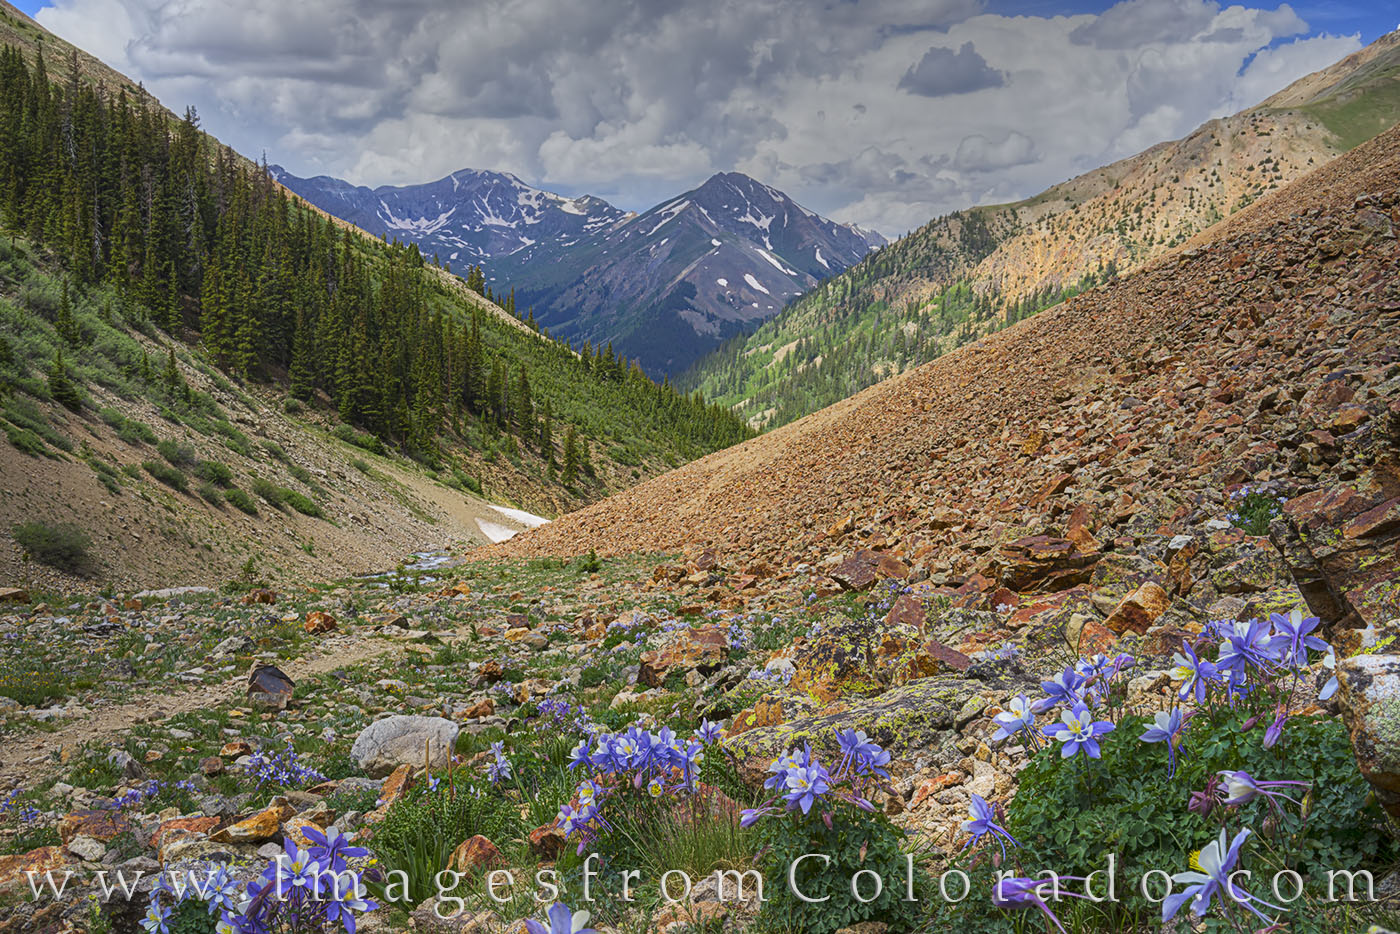 The Silver Creek Trail near Lake City, Colorado, leads to two of Colorado's most beautiful 14,000' peaks - Redcloud and Sunshine...